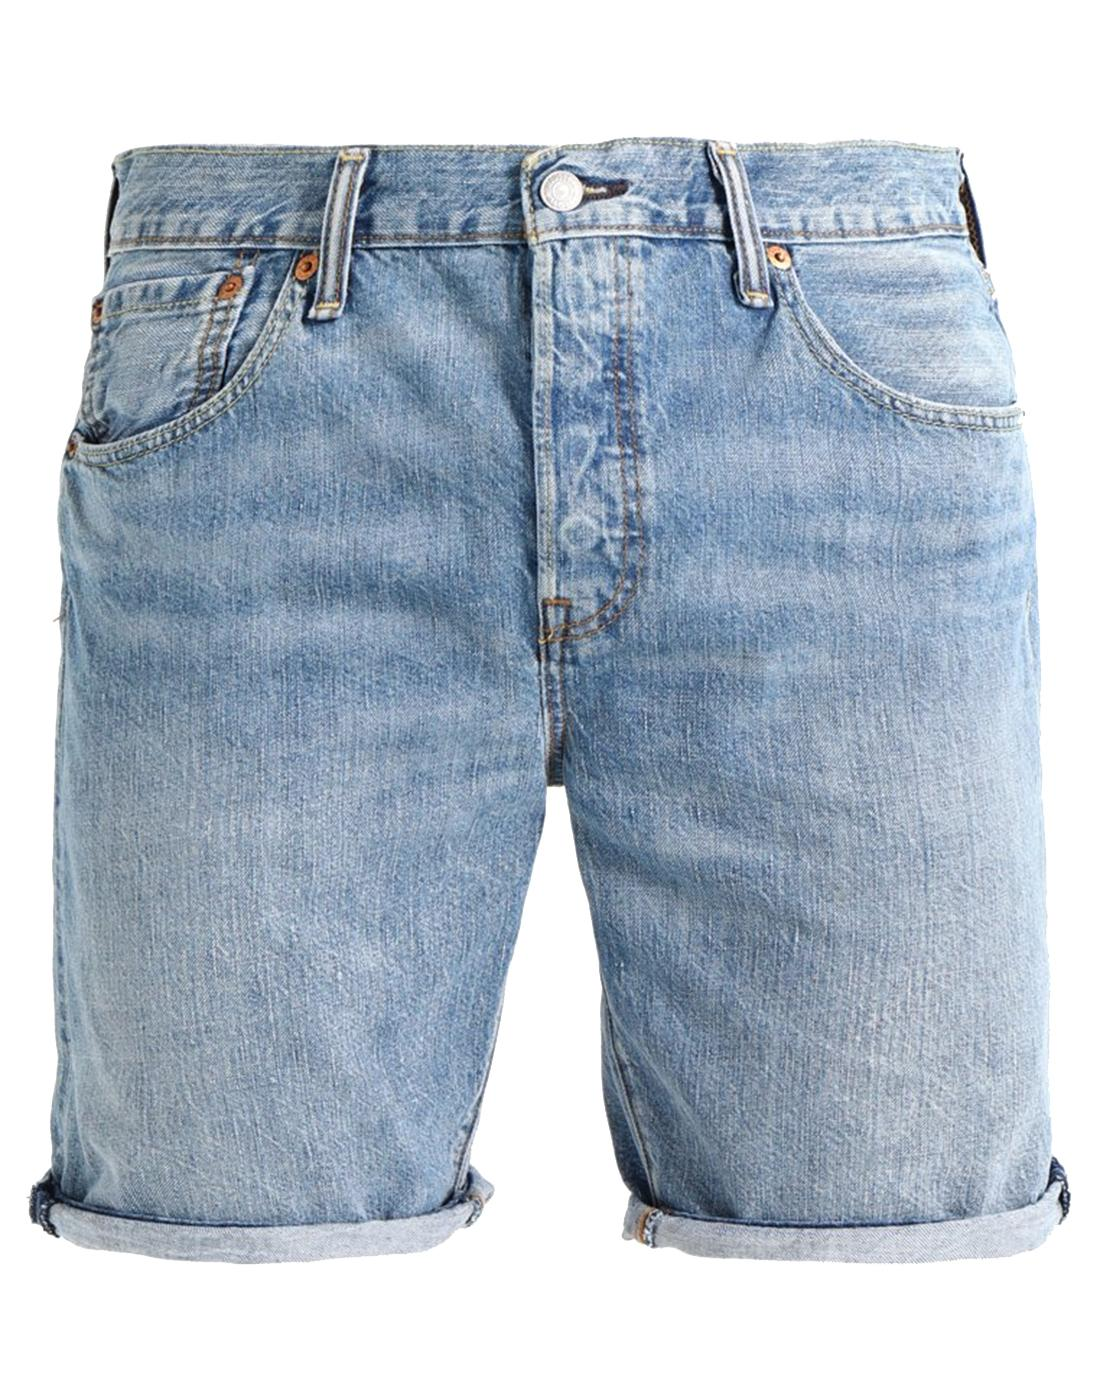 LEVI'S® 501 Men's Hemmed Denim Shorts LIVIN EASY